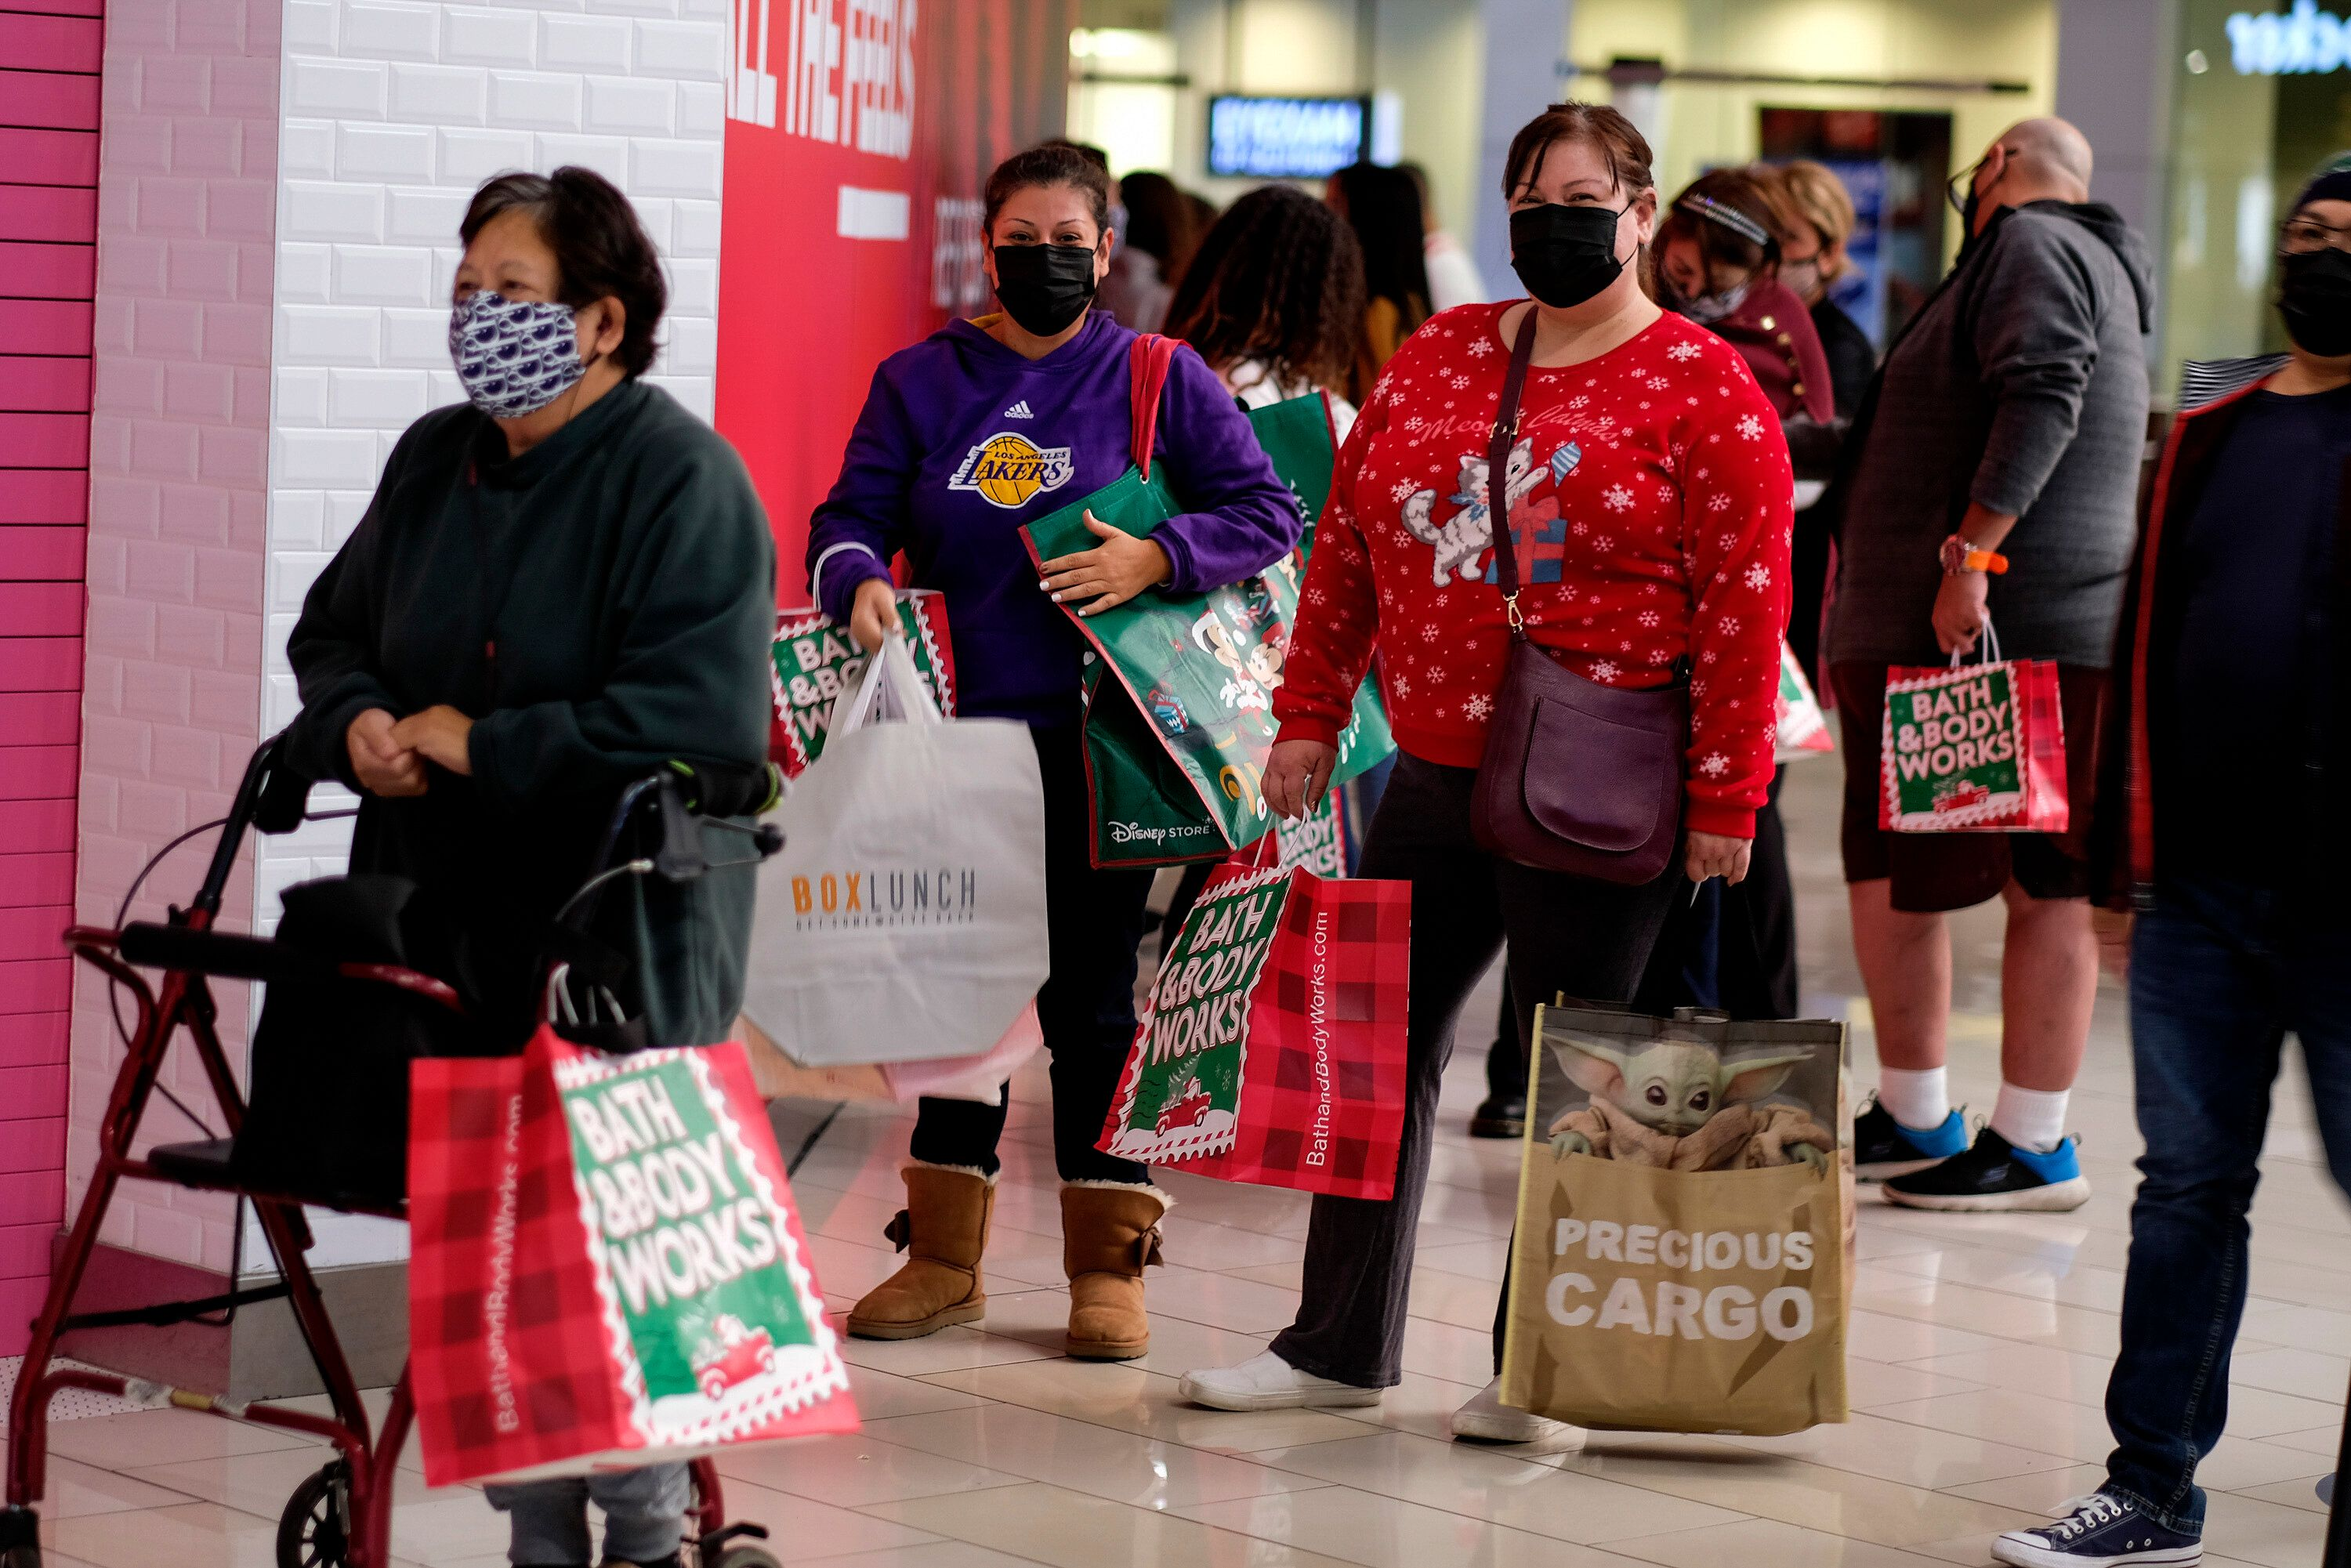 Black Friday shoppers wearing face masks wait in line to enter a store at the Glendale Galleria in Glendale, Calif., Friday,